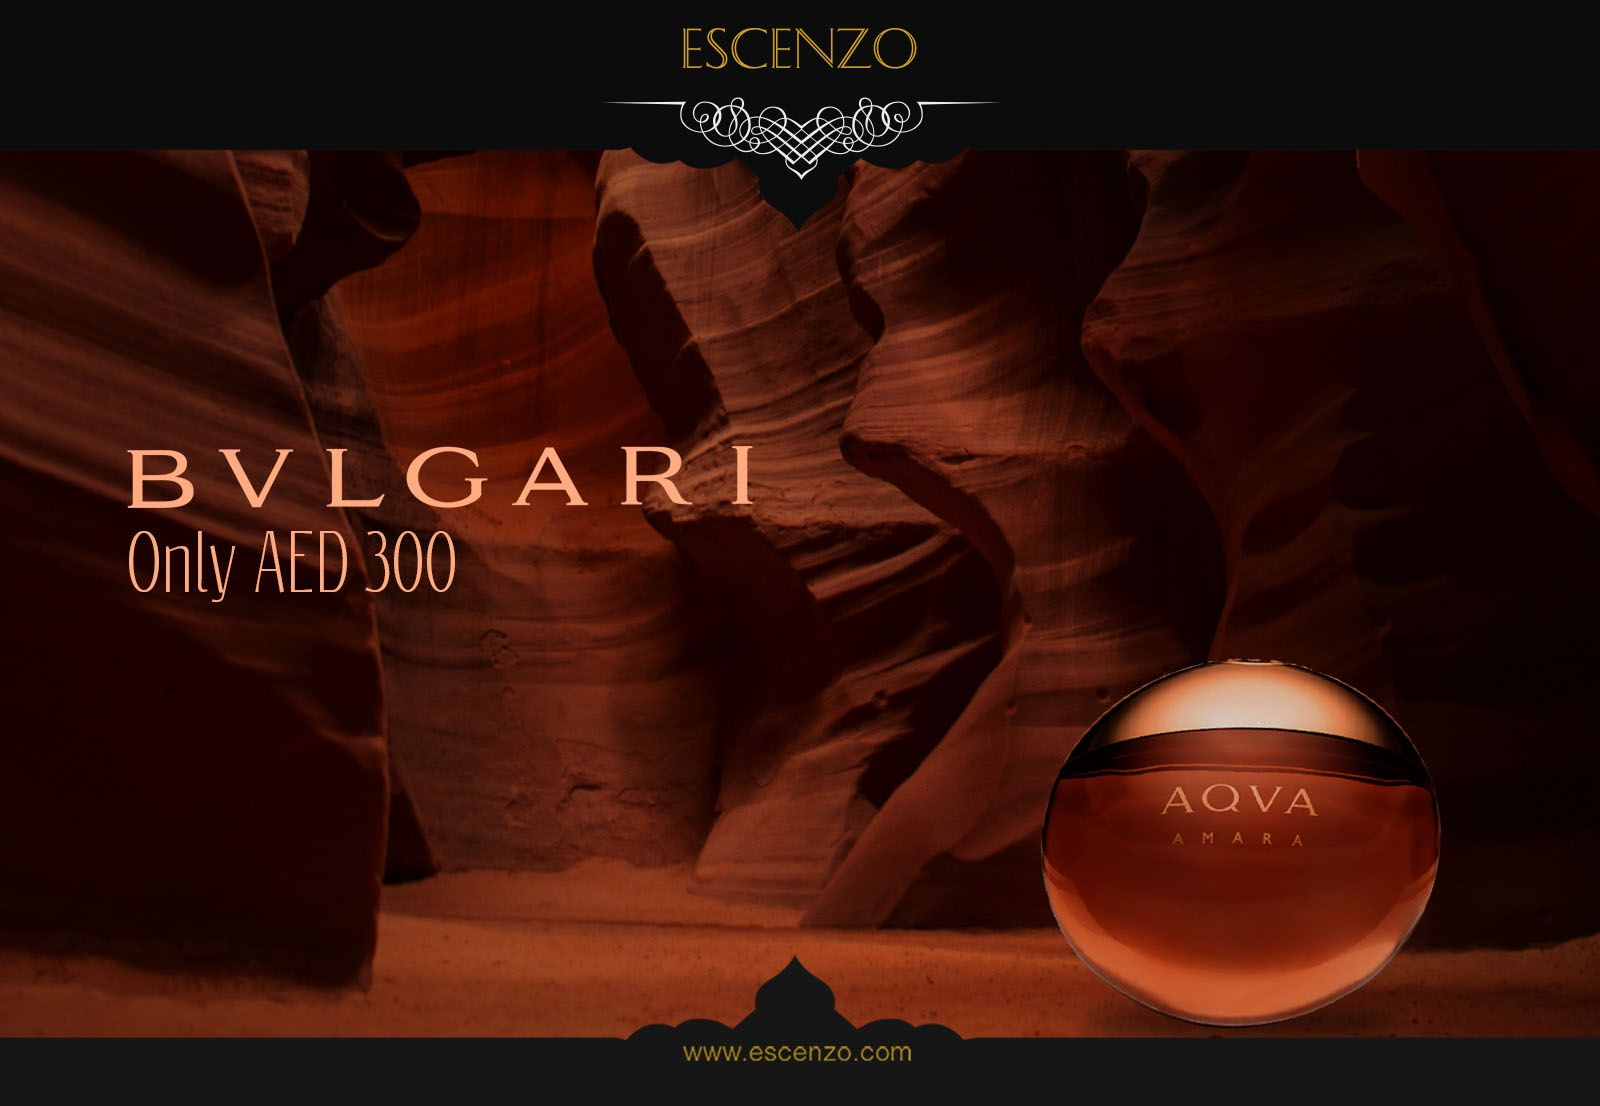 Buy Bvlgari Aqva Amara For Men Our Price 300 Aed Only Click Here To Man Edt 100ml Perfume Order